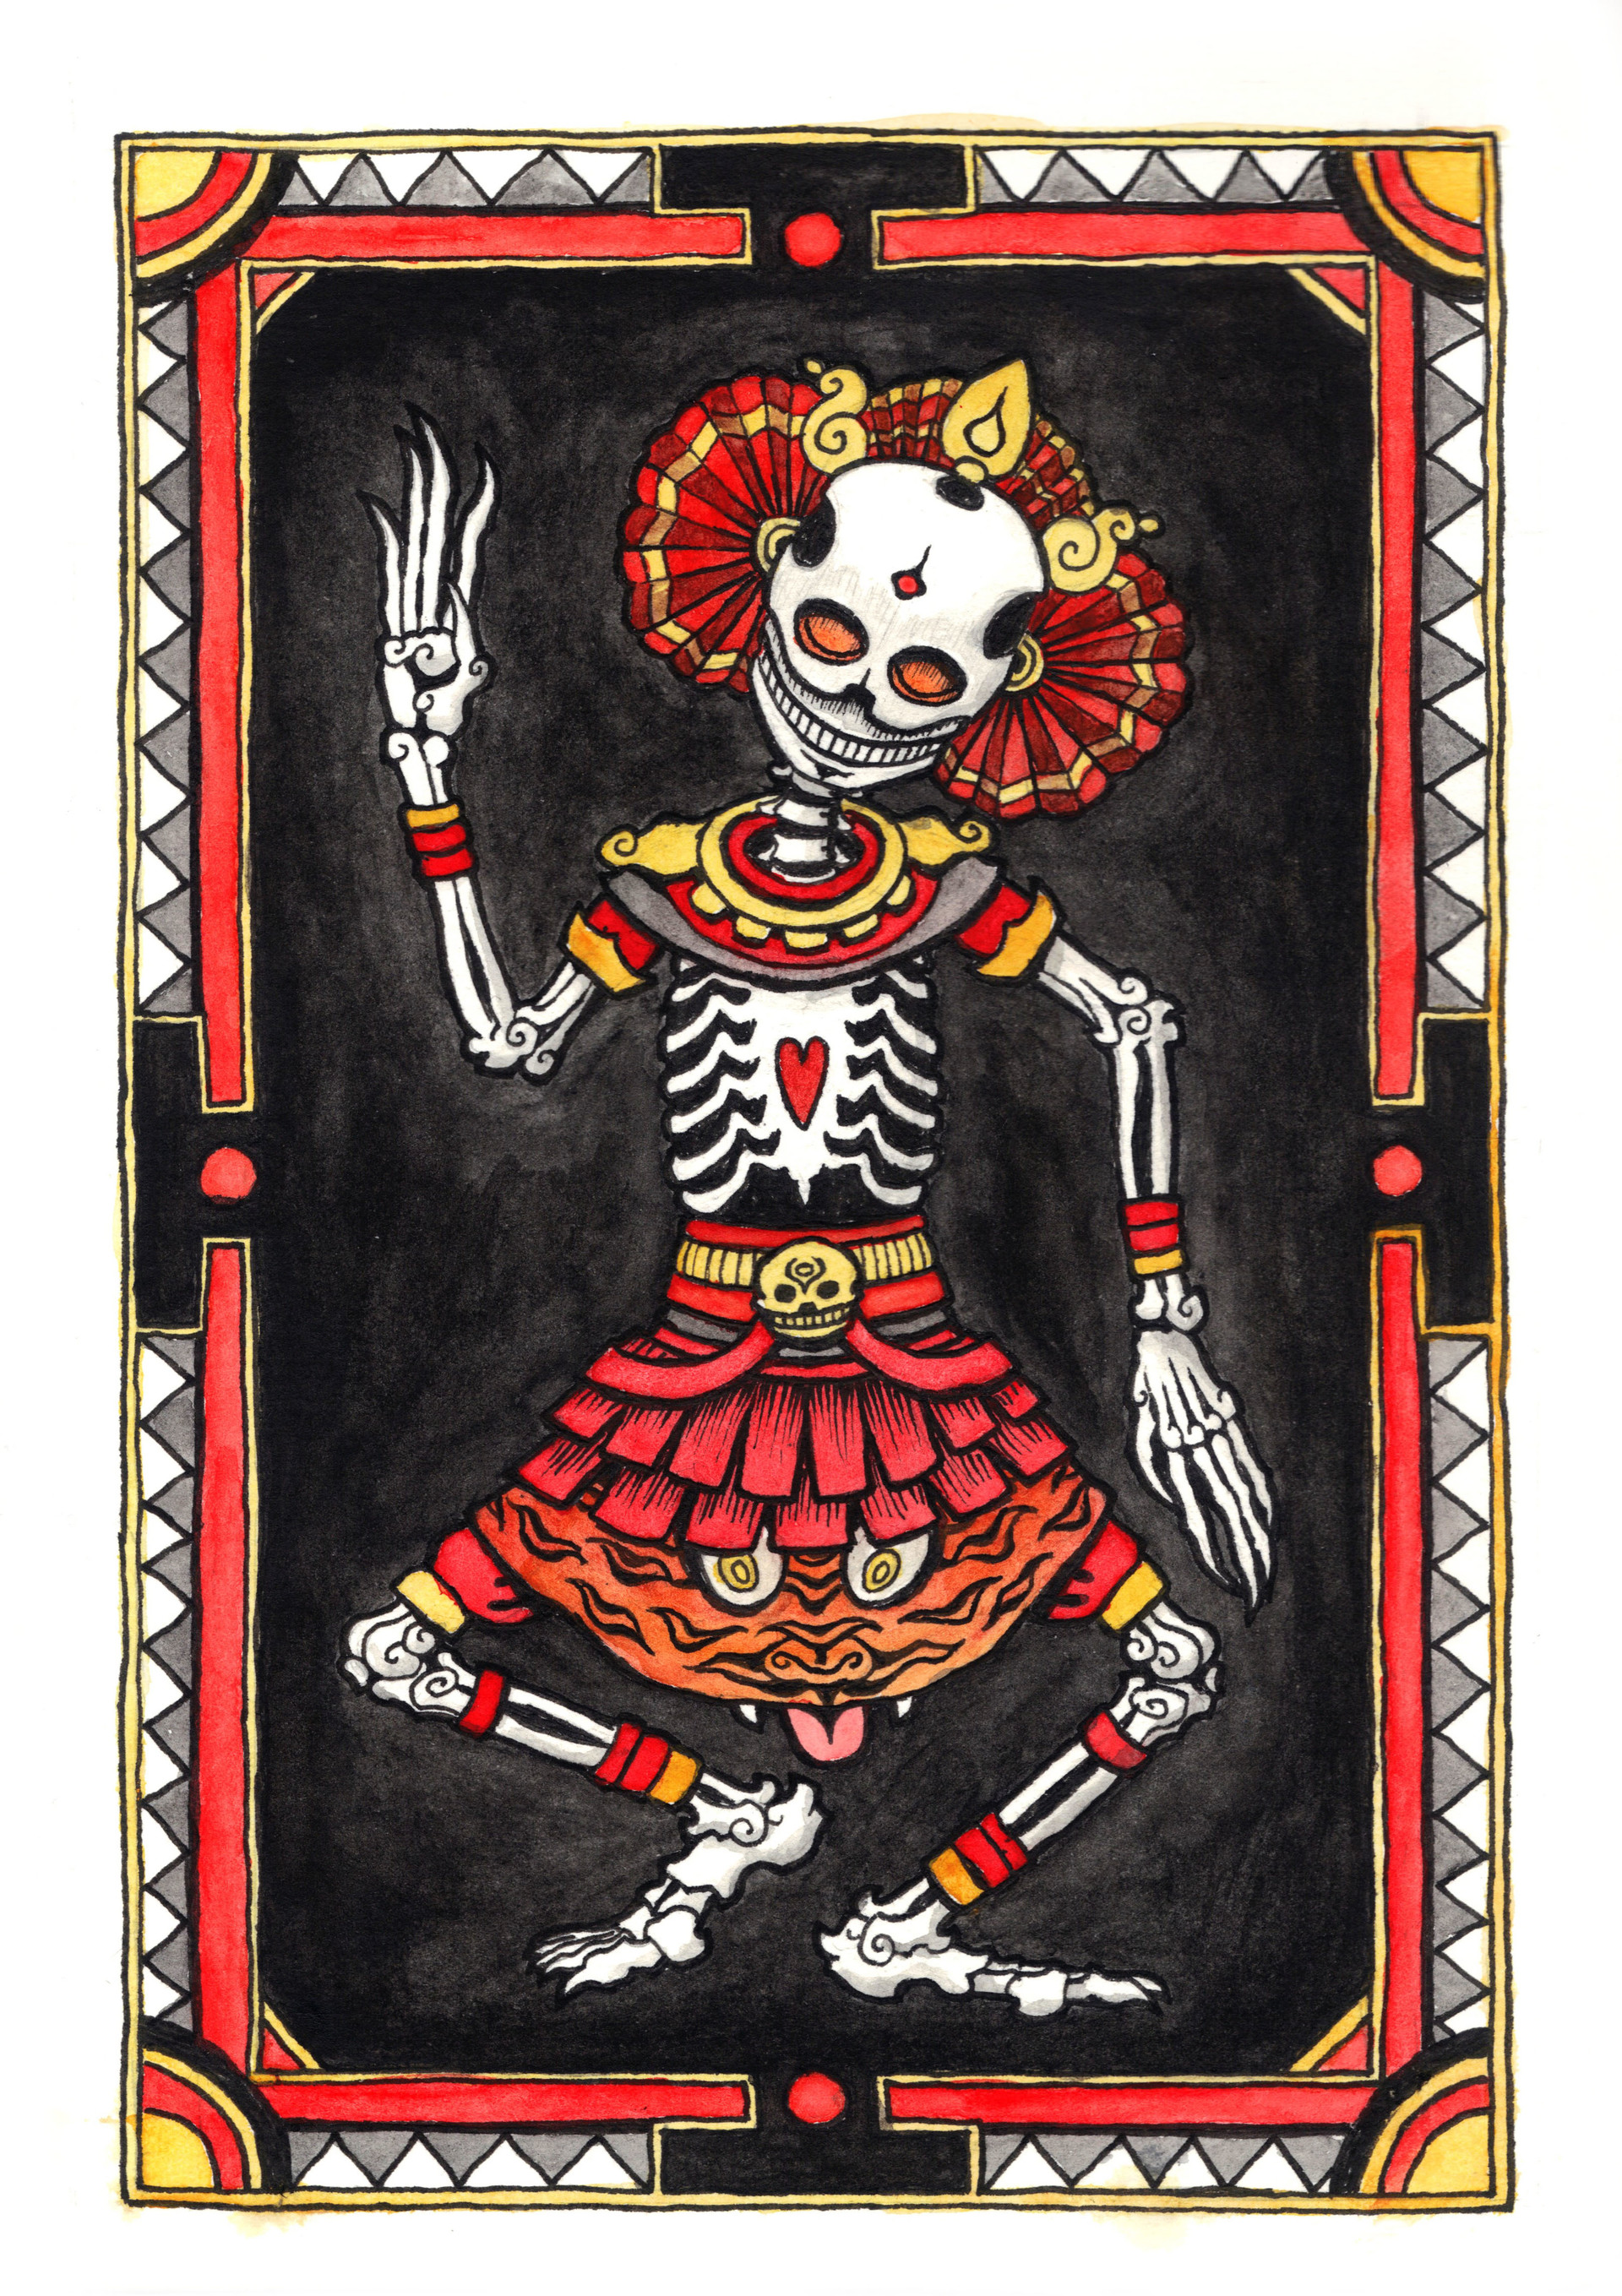 Patrick weck tibetan skeleton final version